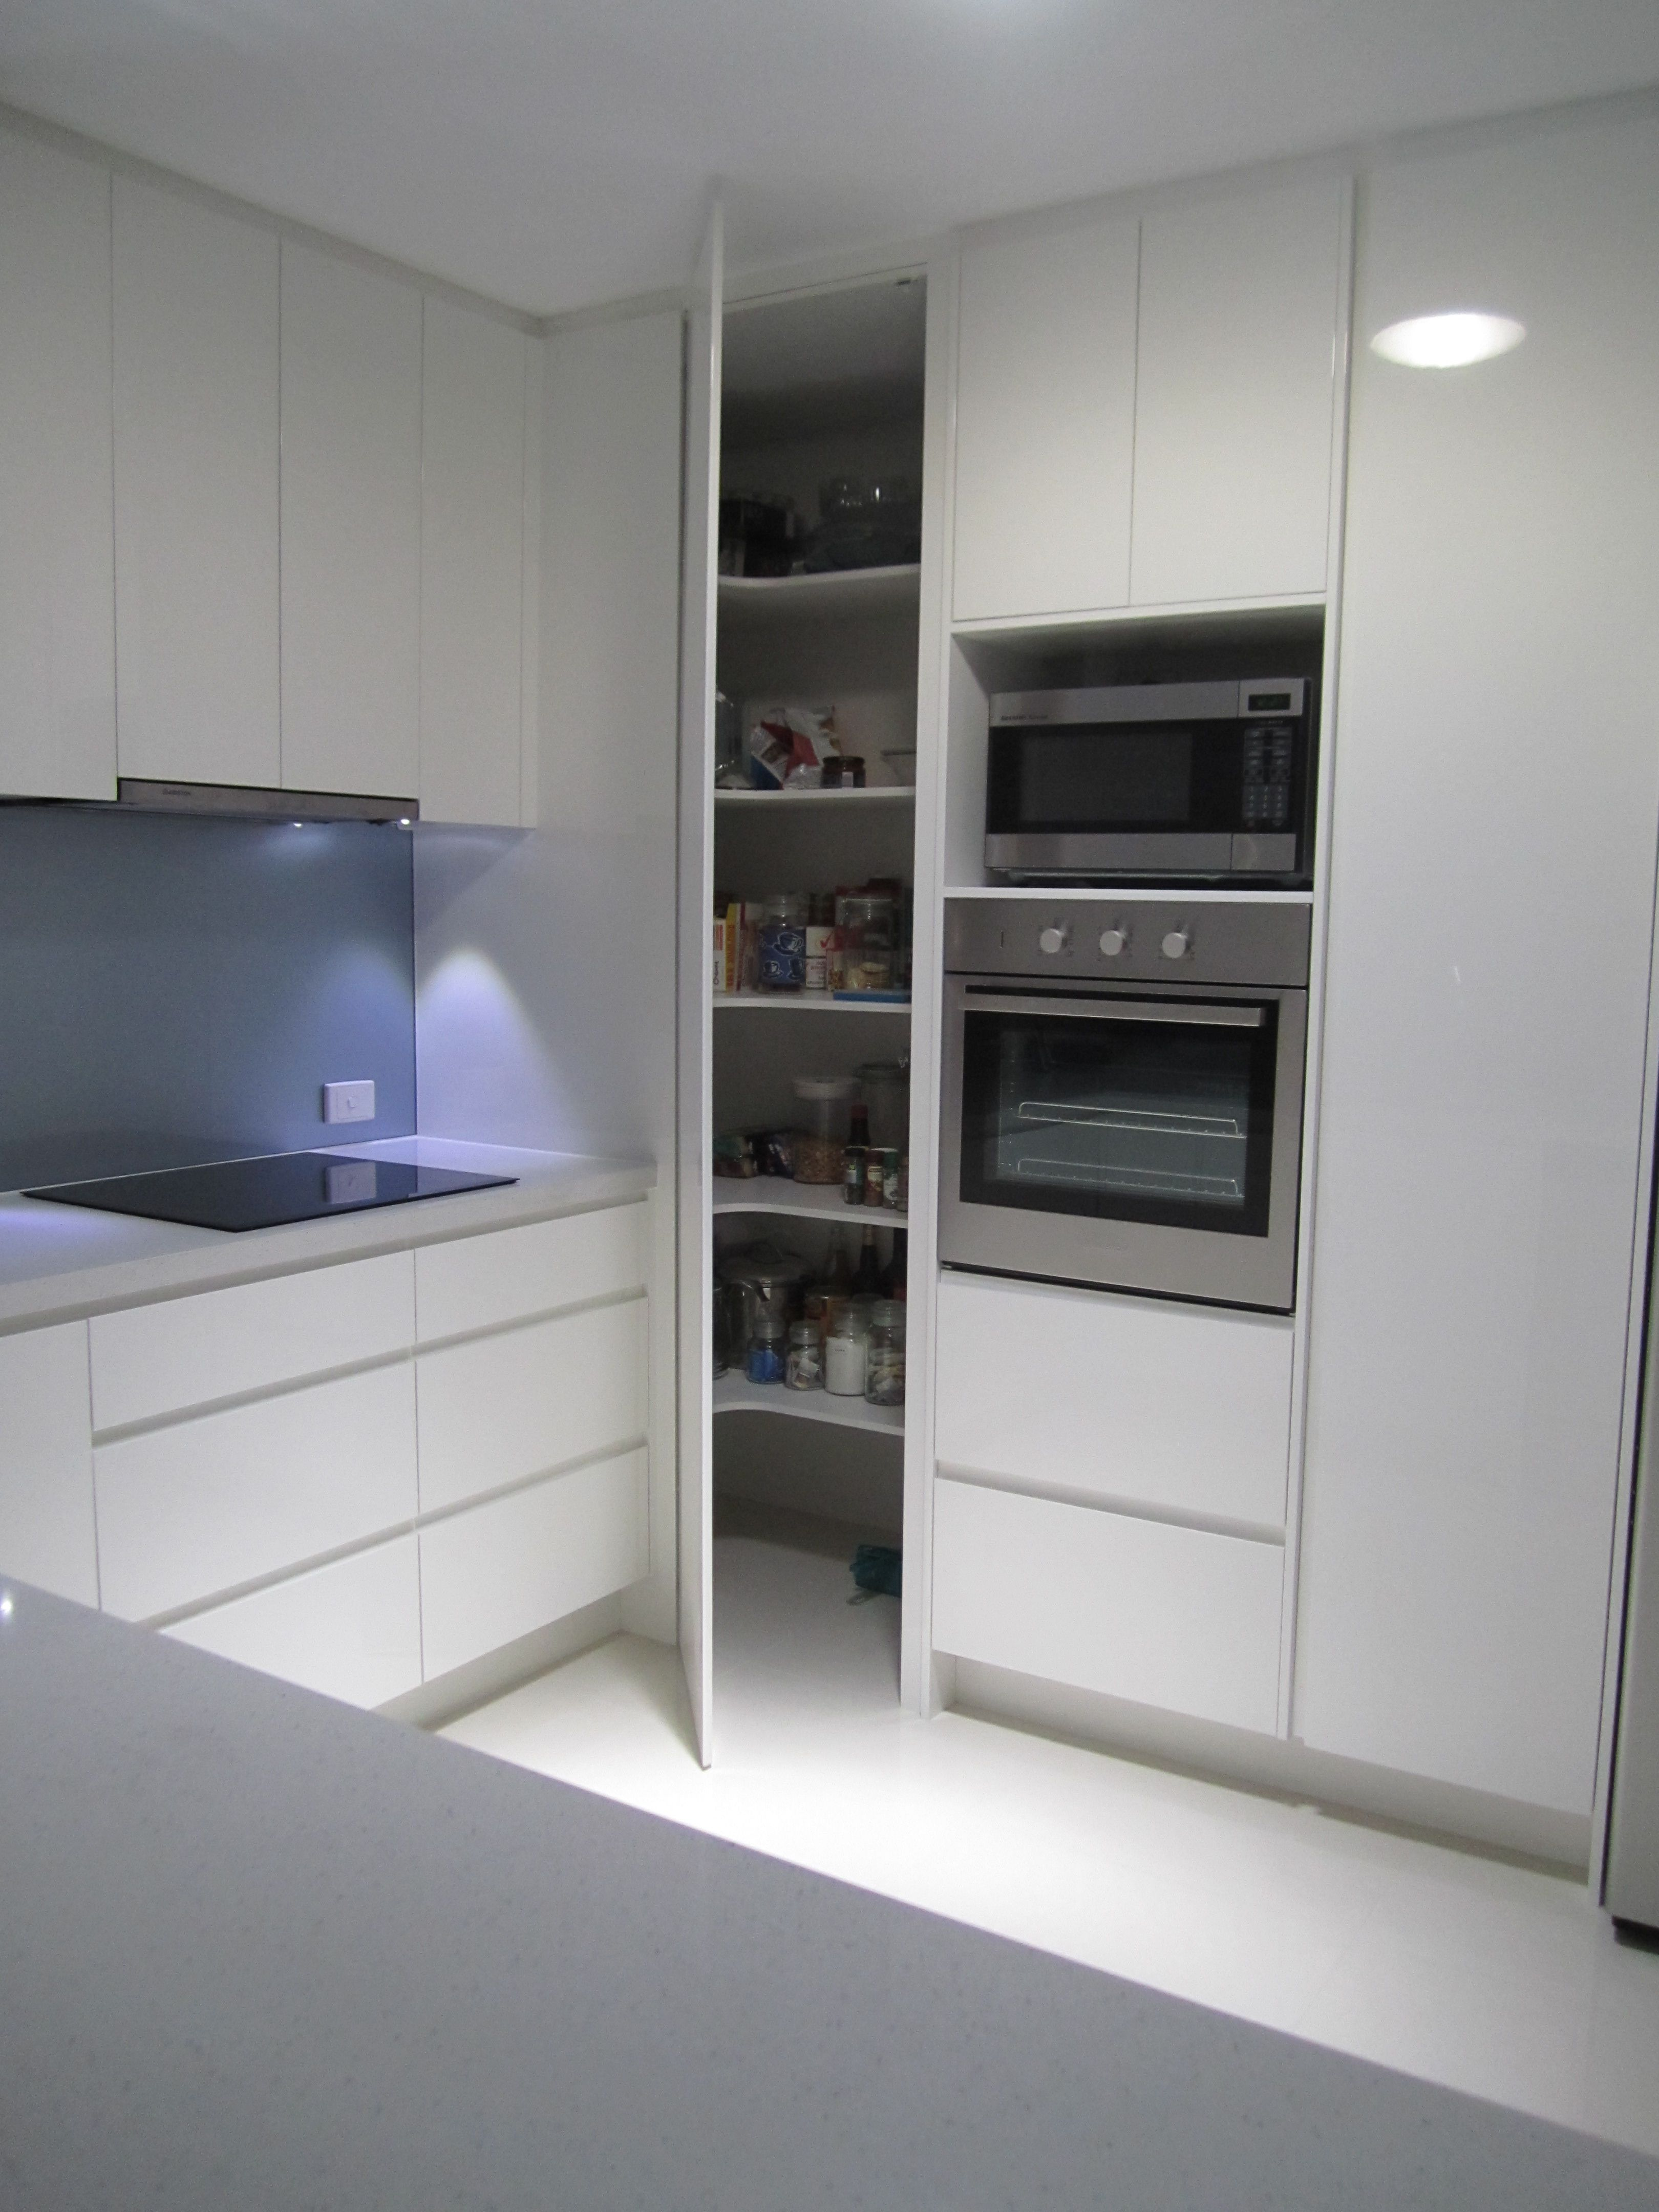 Kitchen cabinets corner oven - Two Ovens In Vertical Alignment With Pantry Door Alongside To The Right Like The Simple